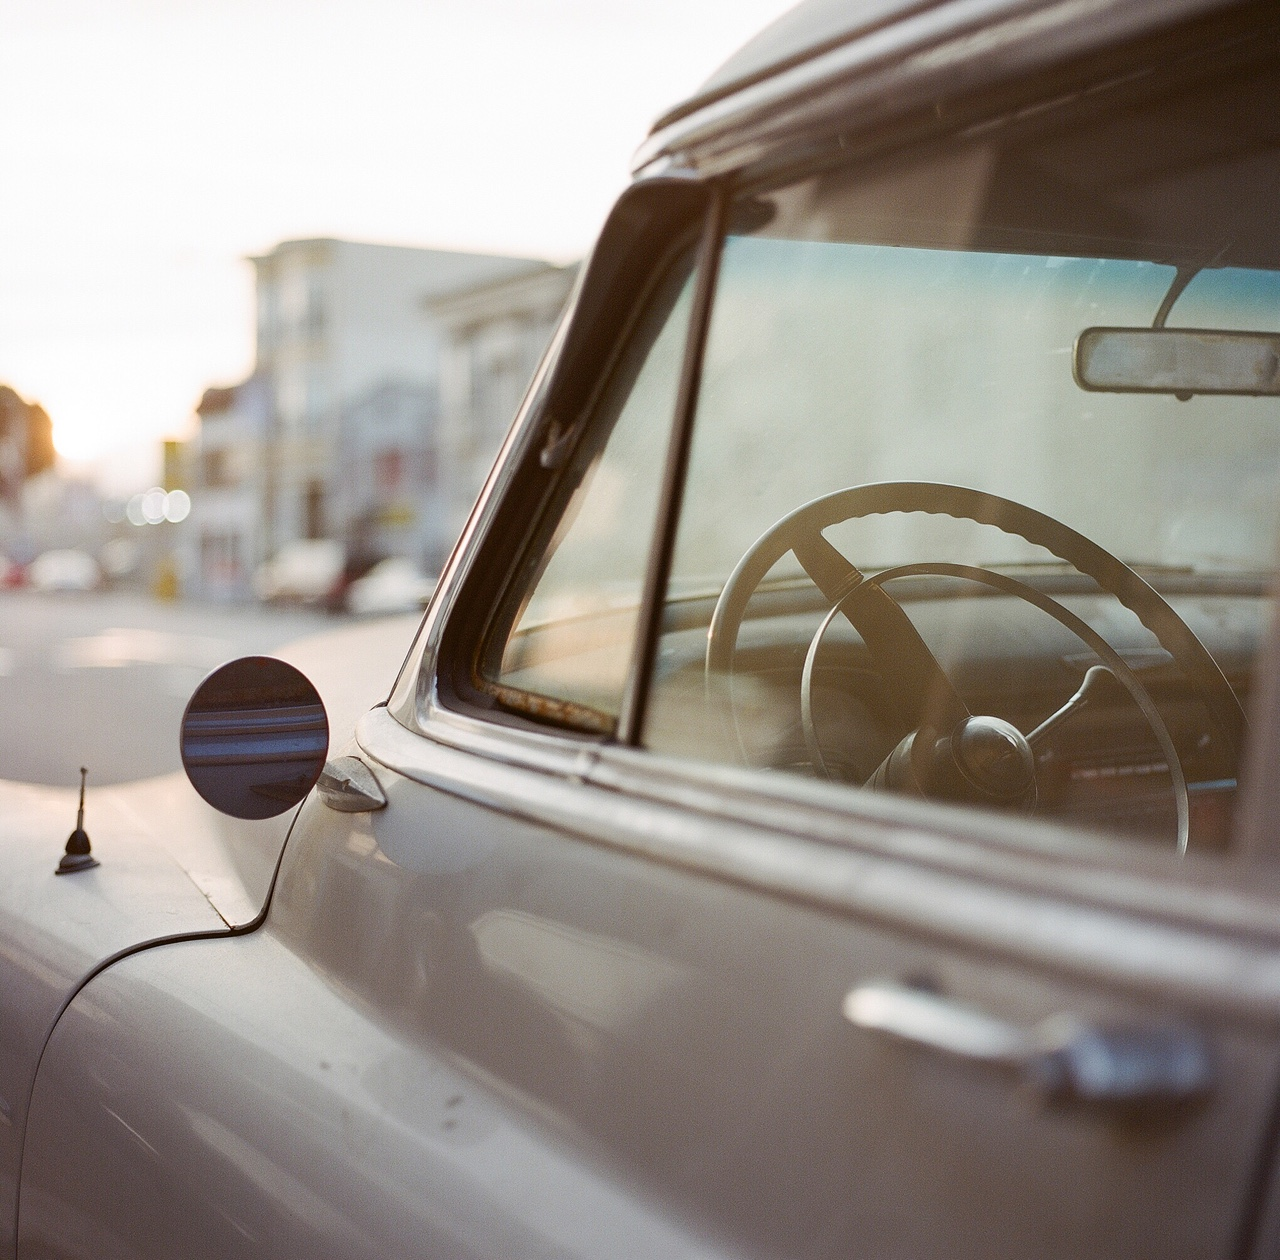 Old Car, Mission Street, SF: Hasselblad 503cw, Kodak Portra 400 ©Bijan